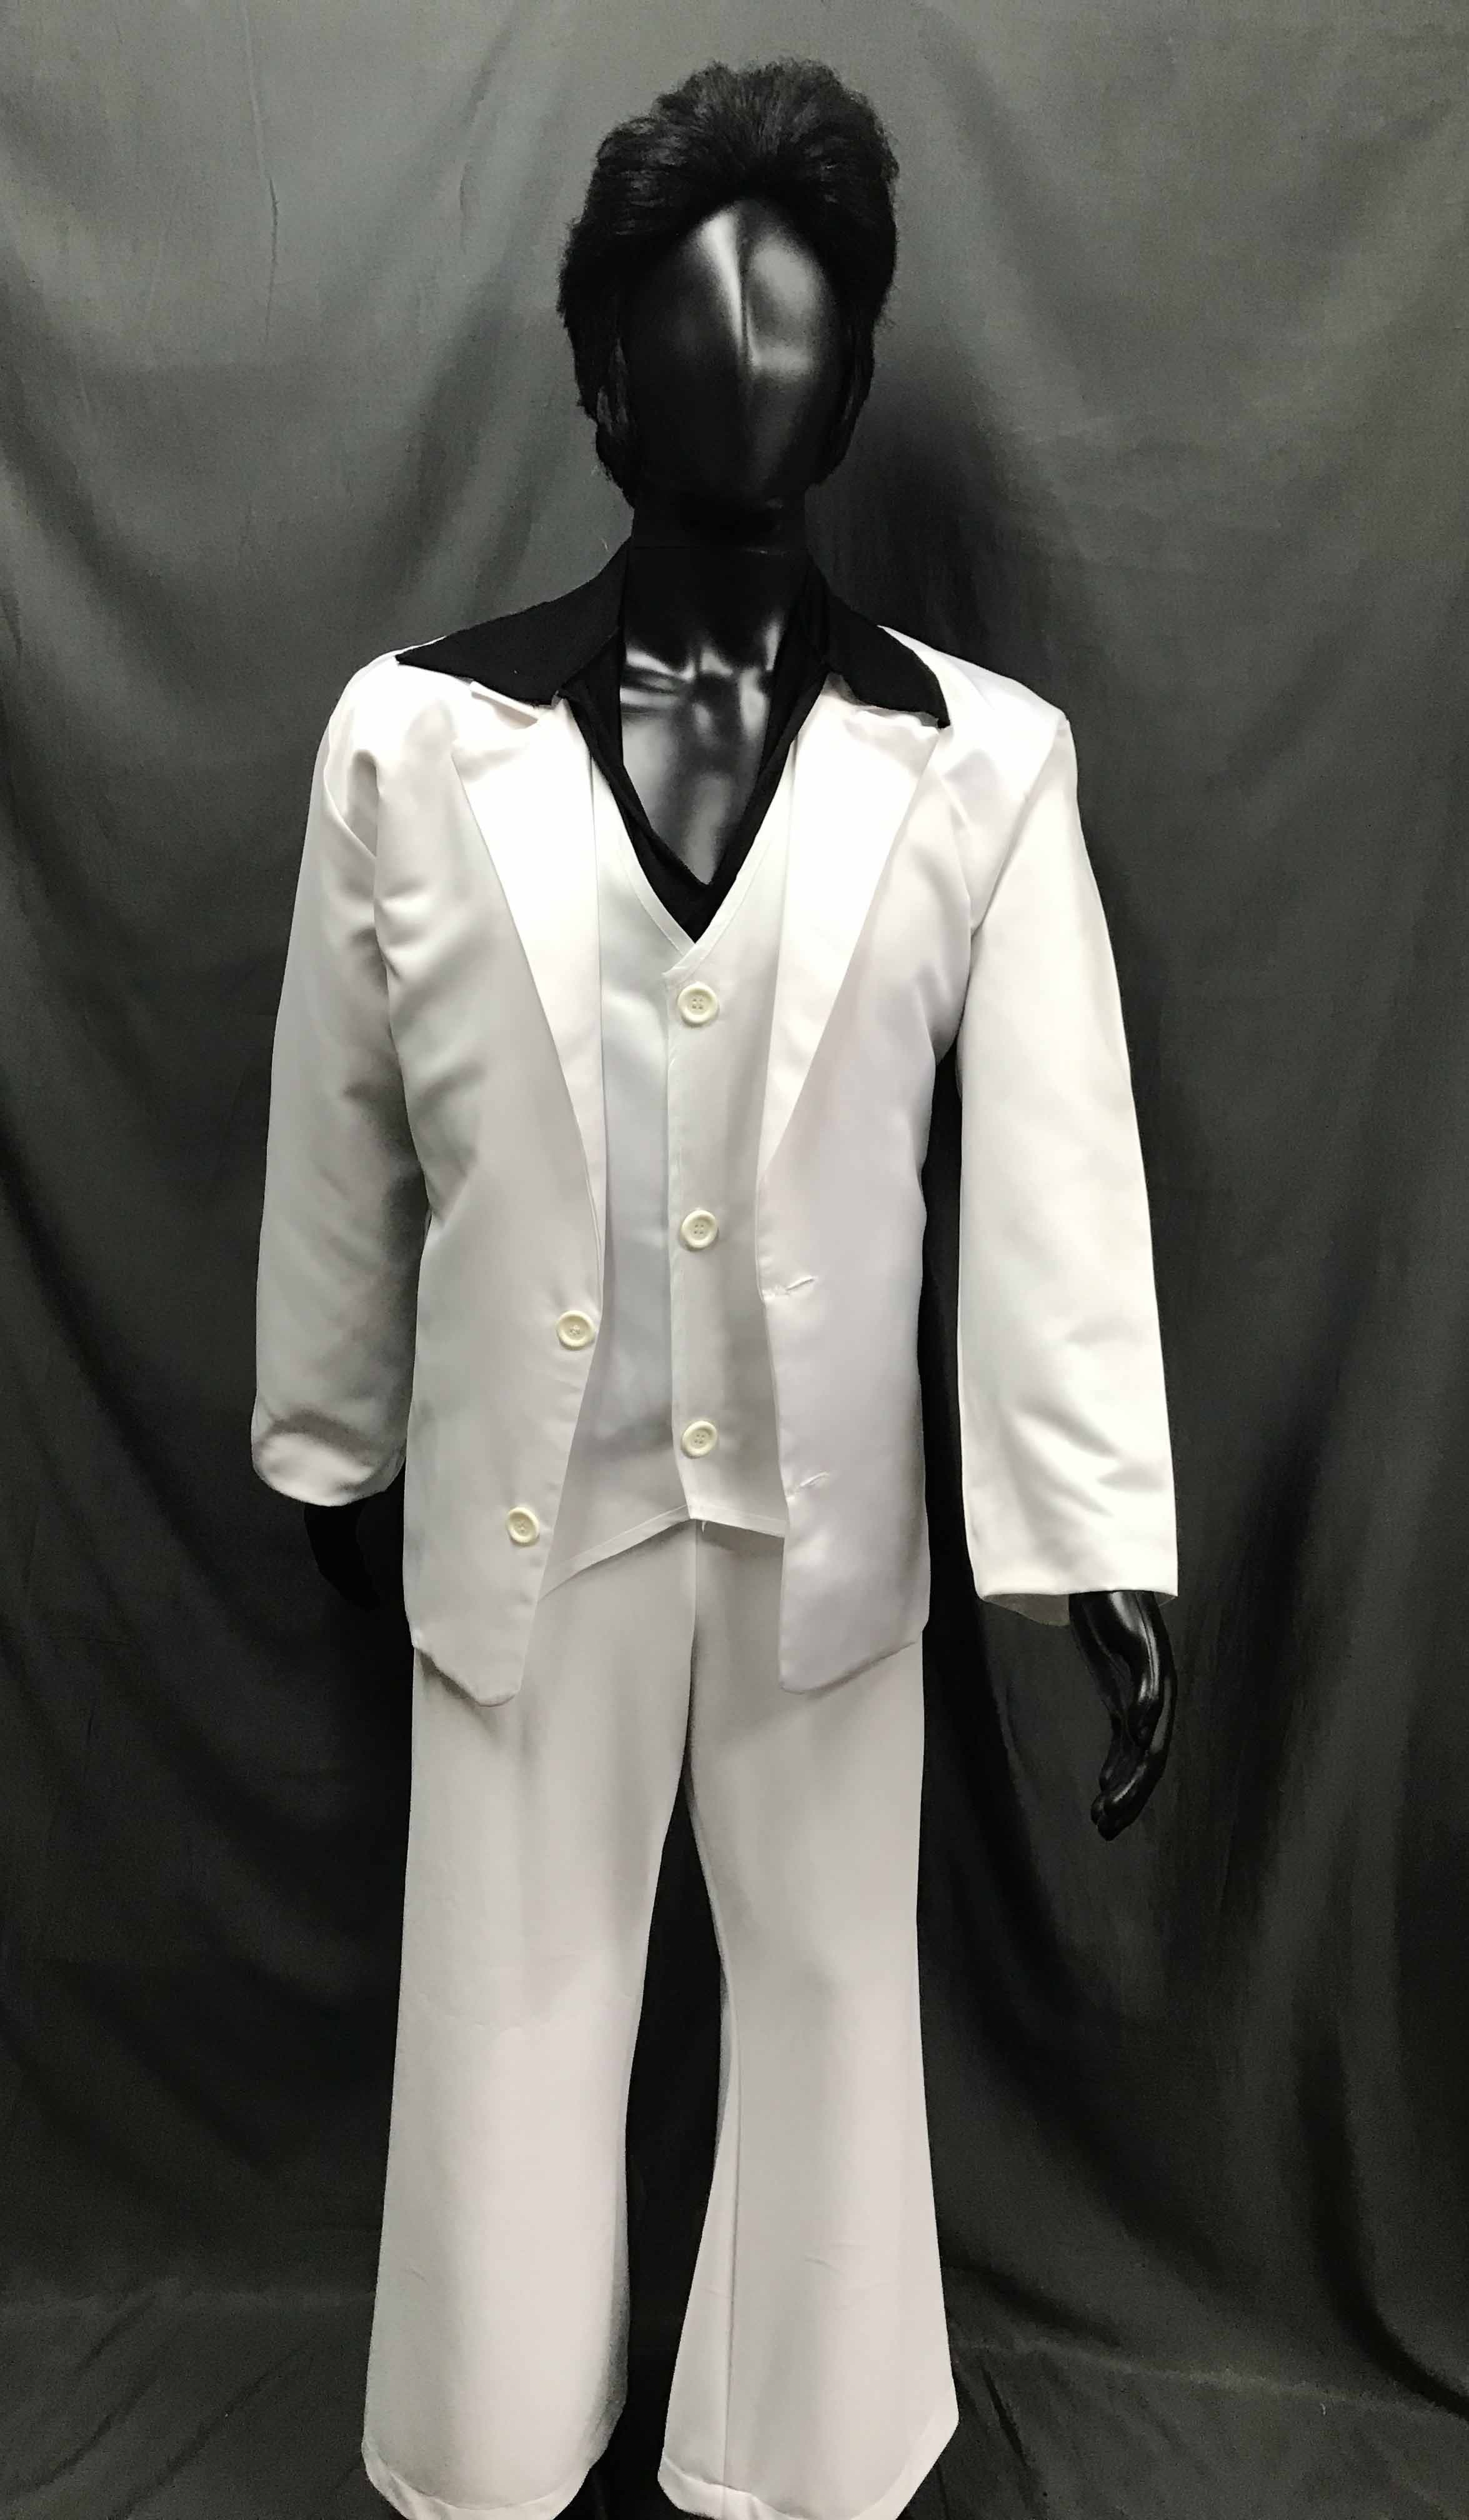 60-70s Mens Disco Costume - Travolta Boogie Nights White Suit - Hire - The Costume Company | Fancy Dress Costumes Hire and Purchase Brisbane and Australia